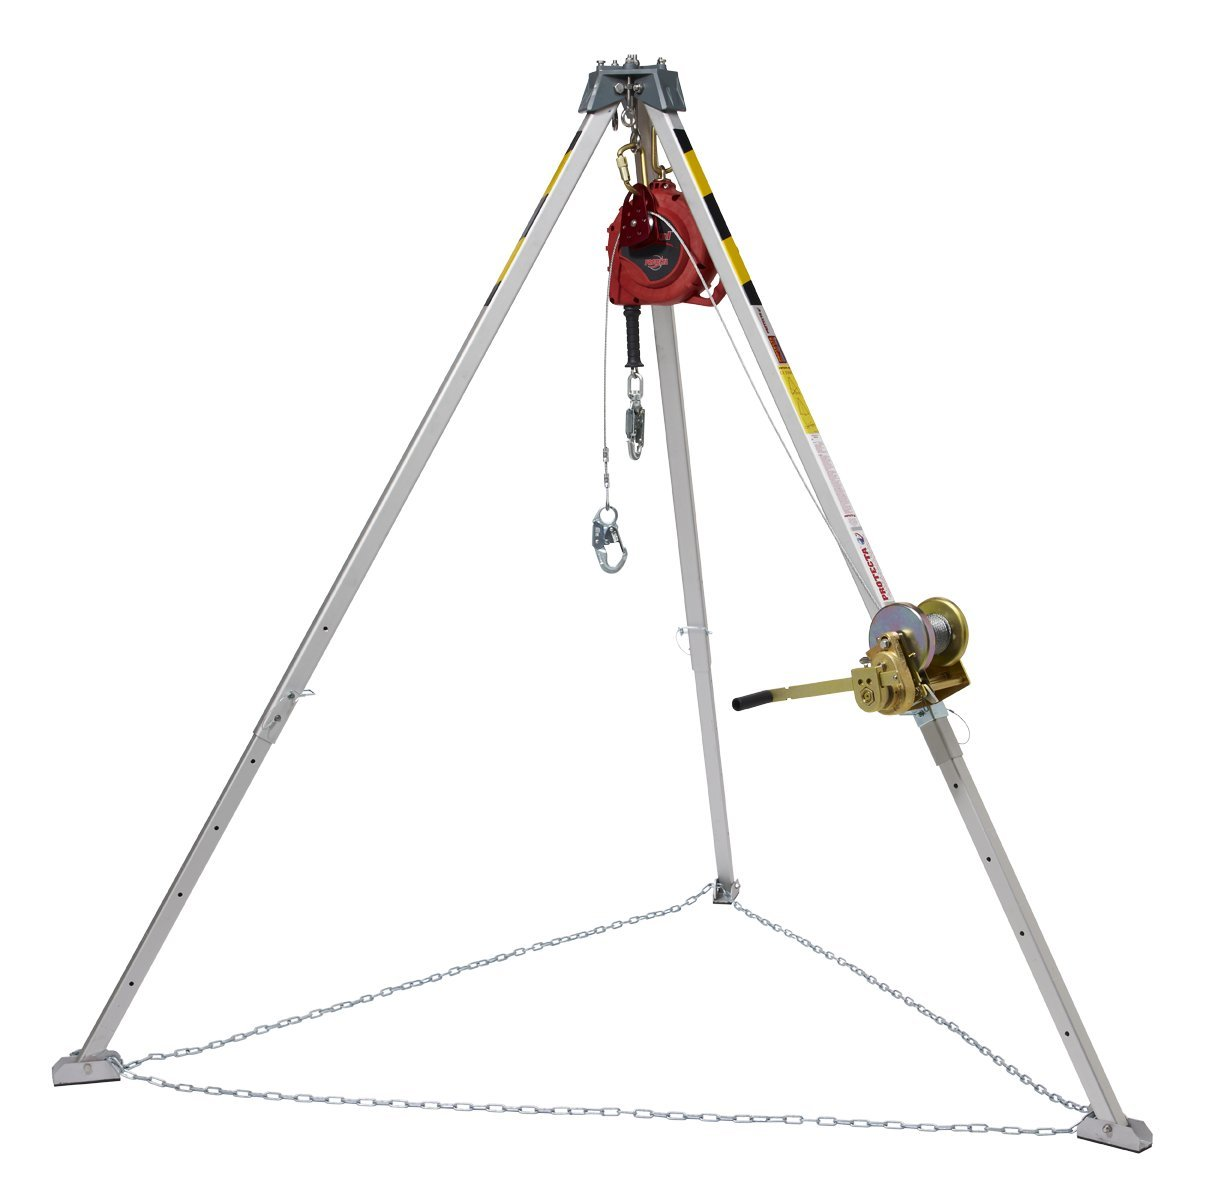 3M Protecta PRO AA805AG1 Confined Space System Kit, with 8' Tripod, 50' Winch, Carabiner, Pulley, and 50' Rebel Self-Retracting Lifeline by 3M Personal Protective Equipment